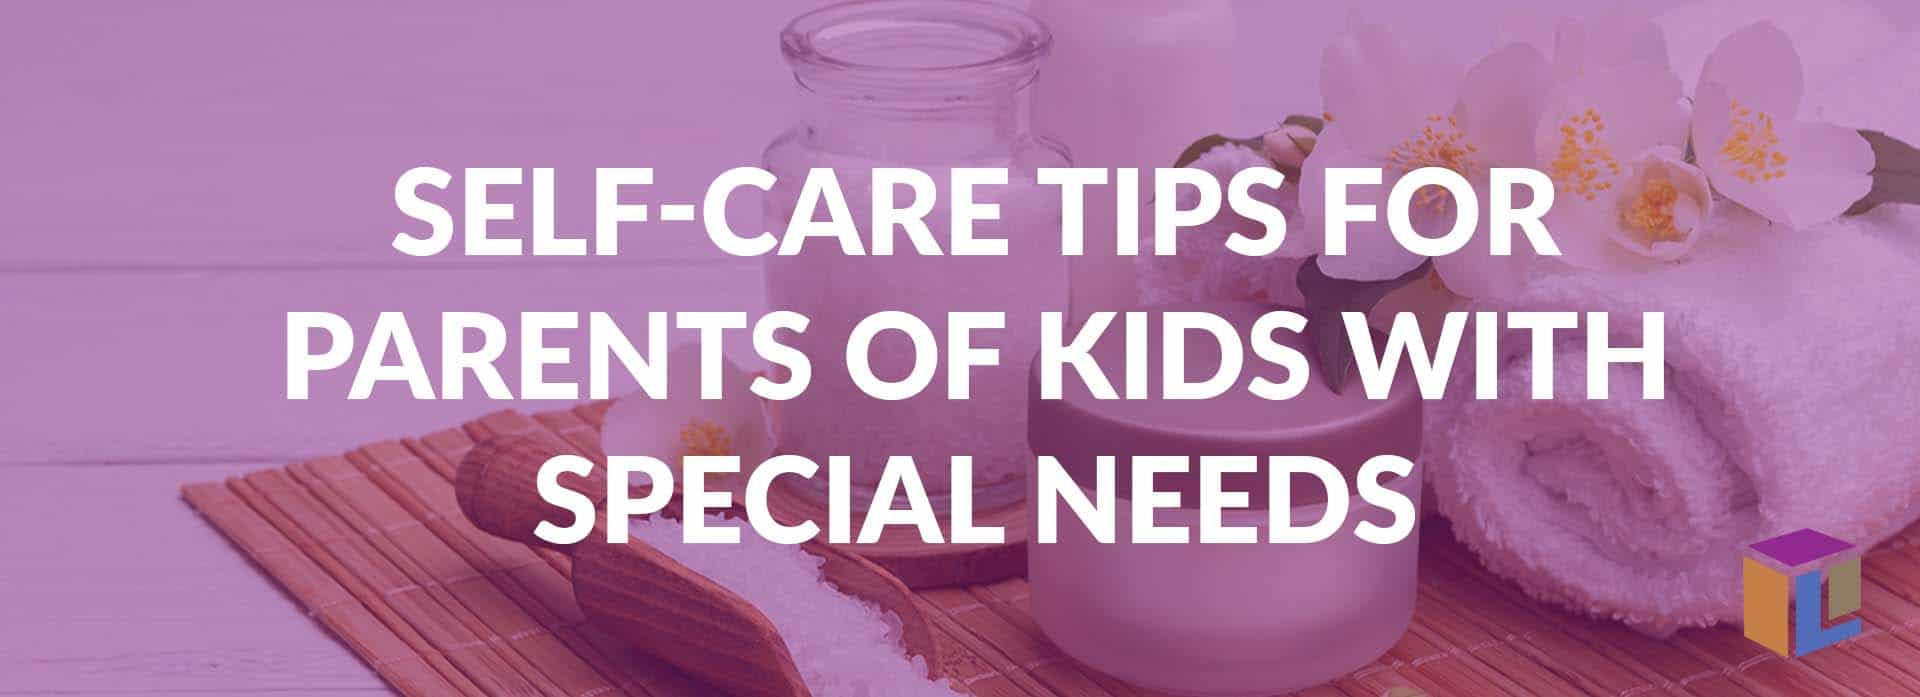 Self-Care For Parents Of Kids With Special Needs